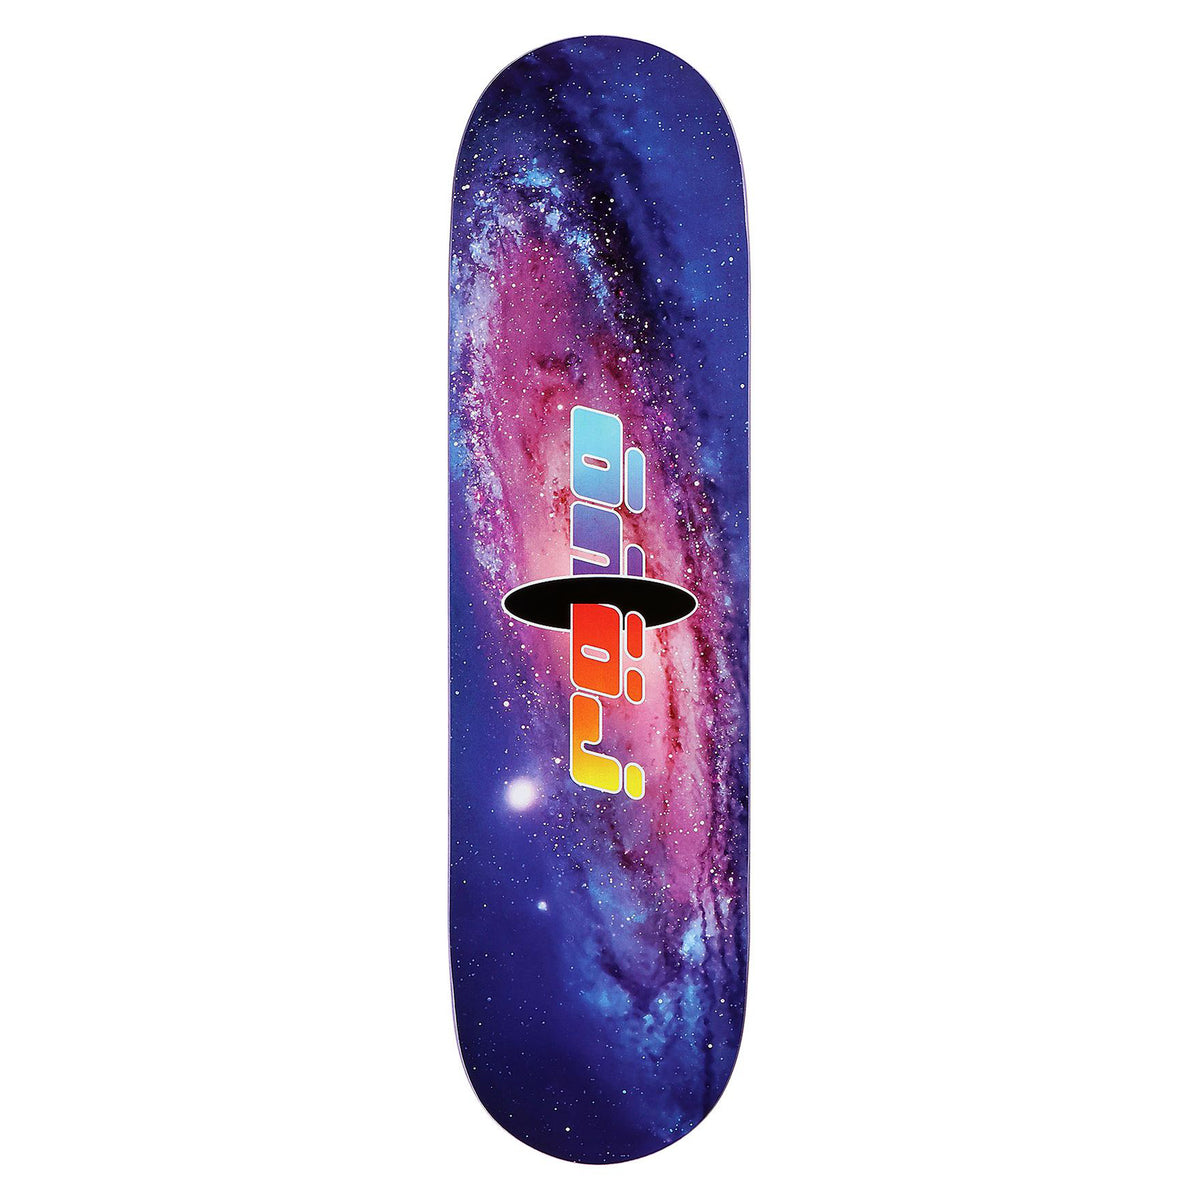 BLACK HOLE board - RAVE skateboards